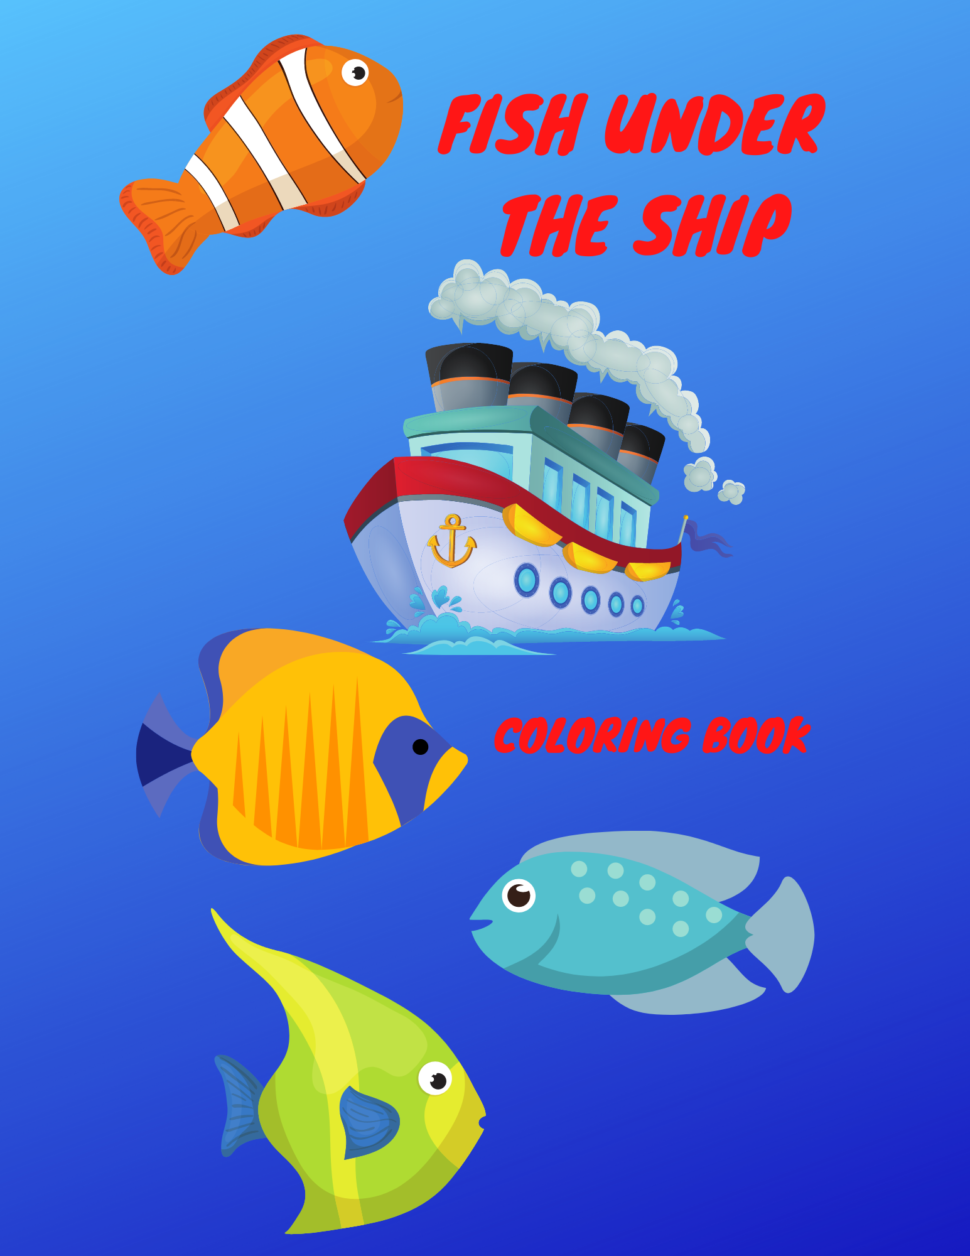 Fish under the ship